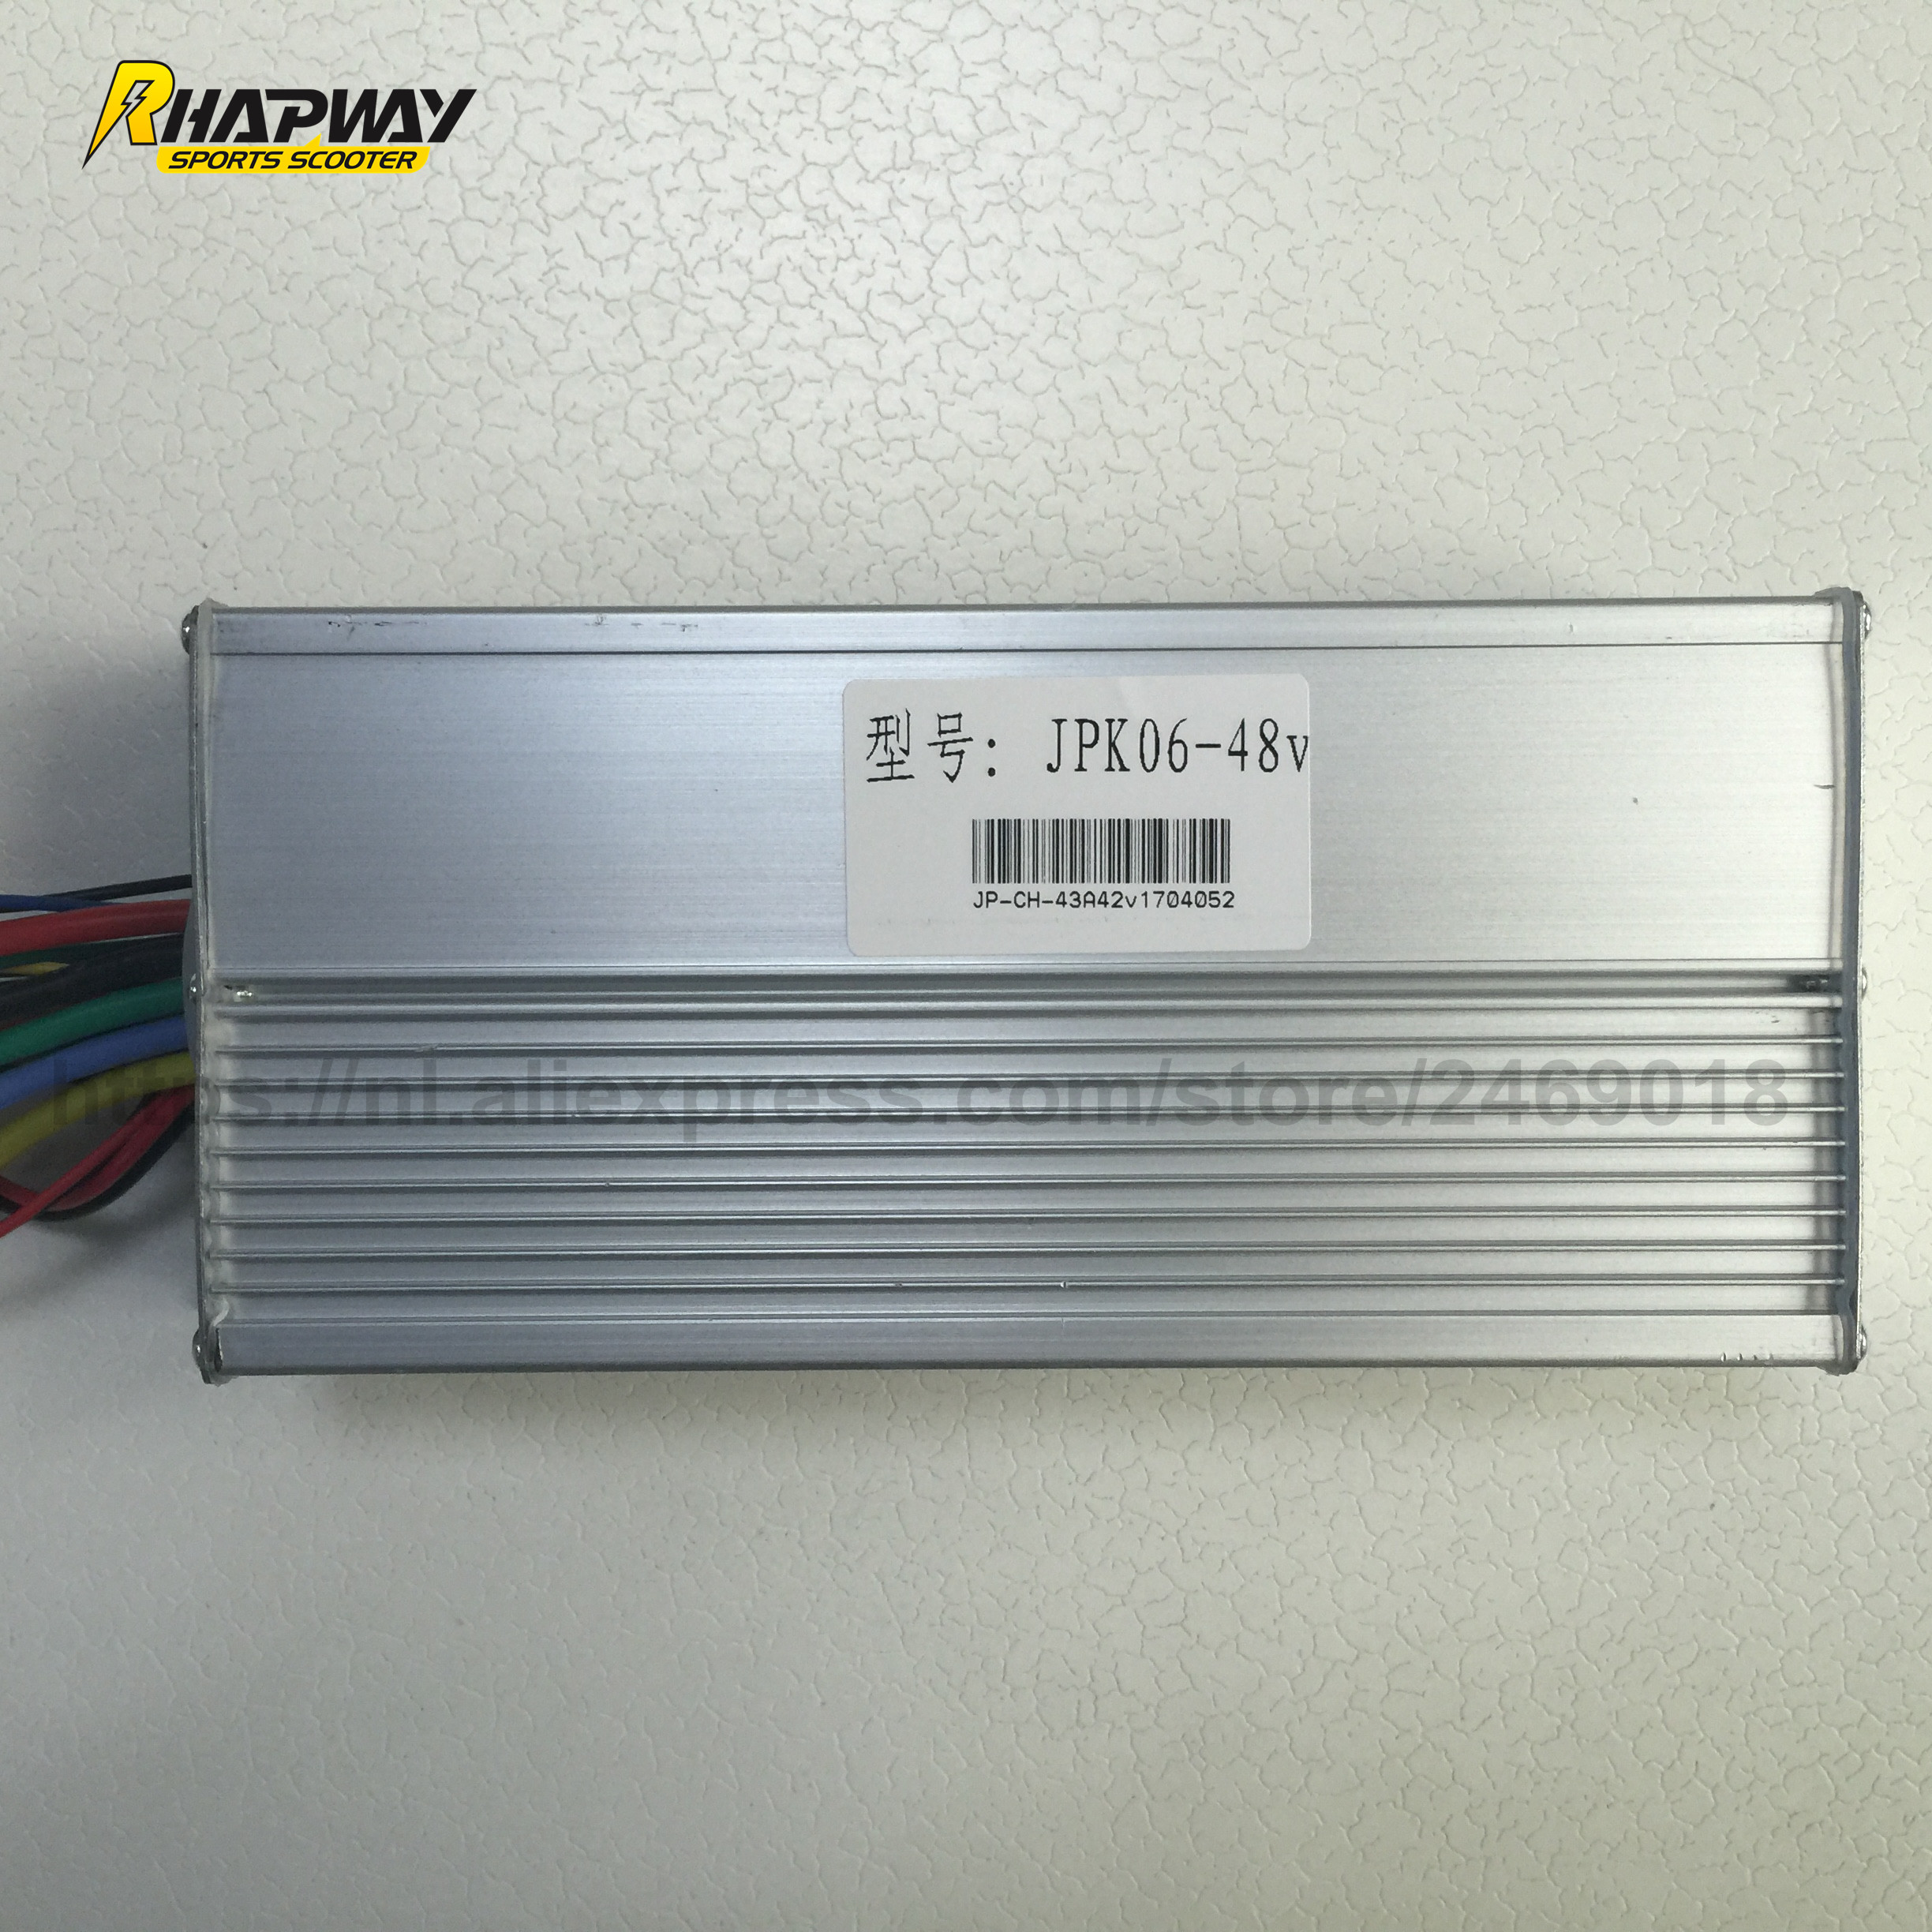 Electric Scooter 1800w 48v Brushless Dc Motor Controller 43a Bldc With Cruise Alarm Speed Sensor Function In Parts Diagram Quotes